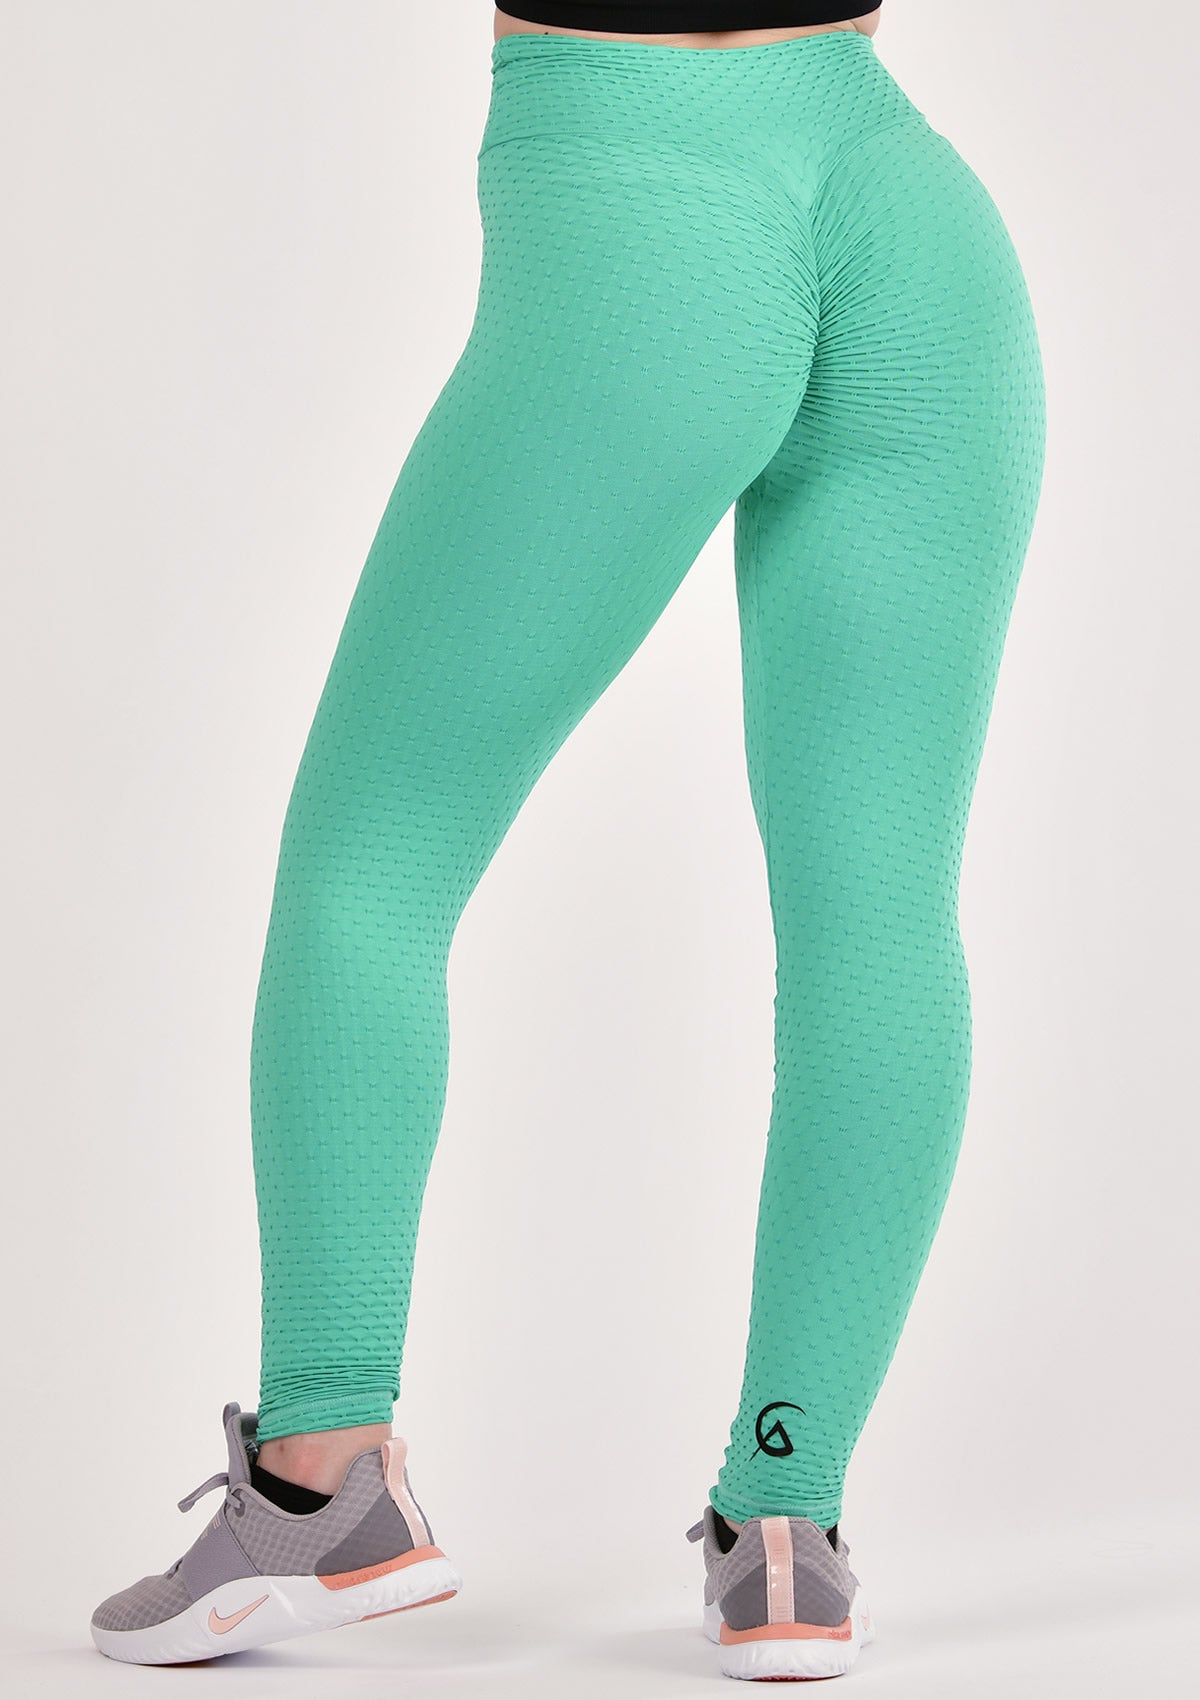 Ruched Green Leggings